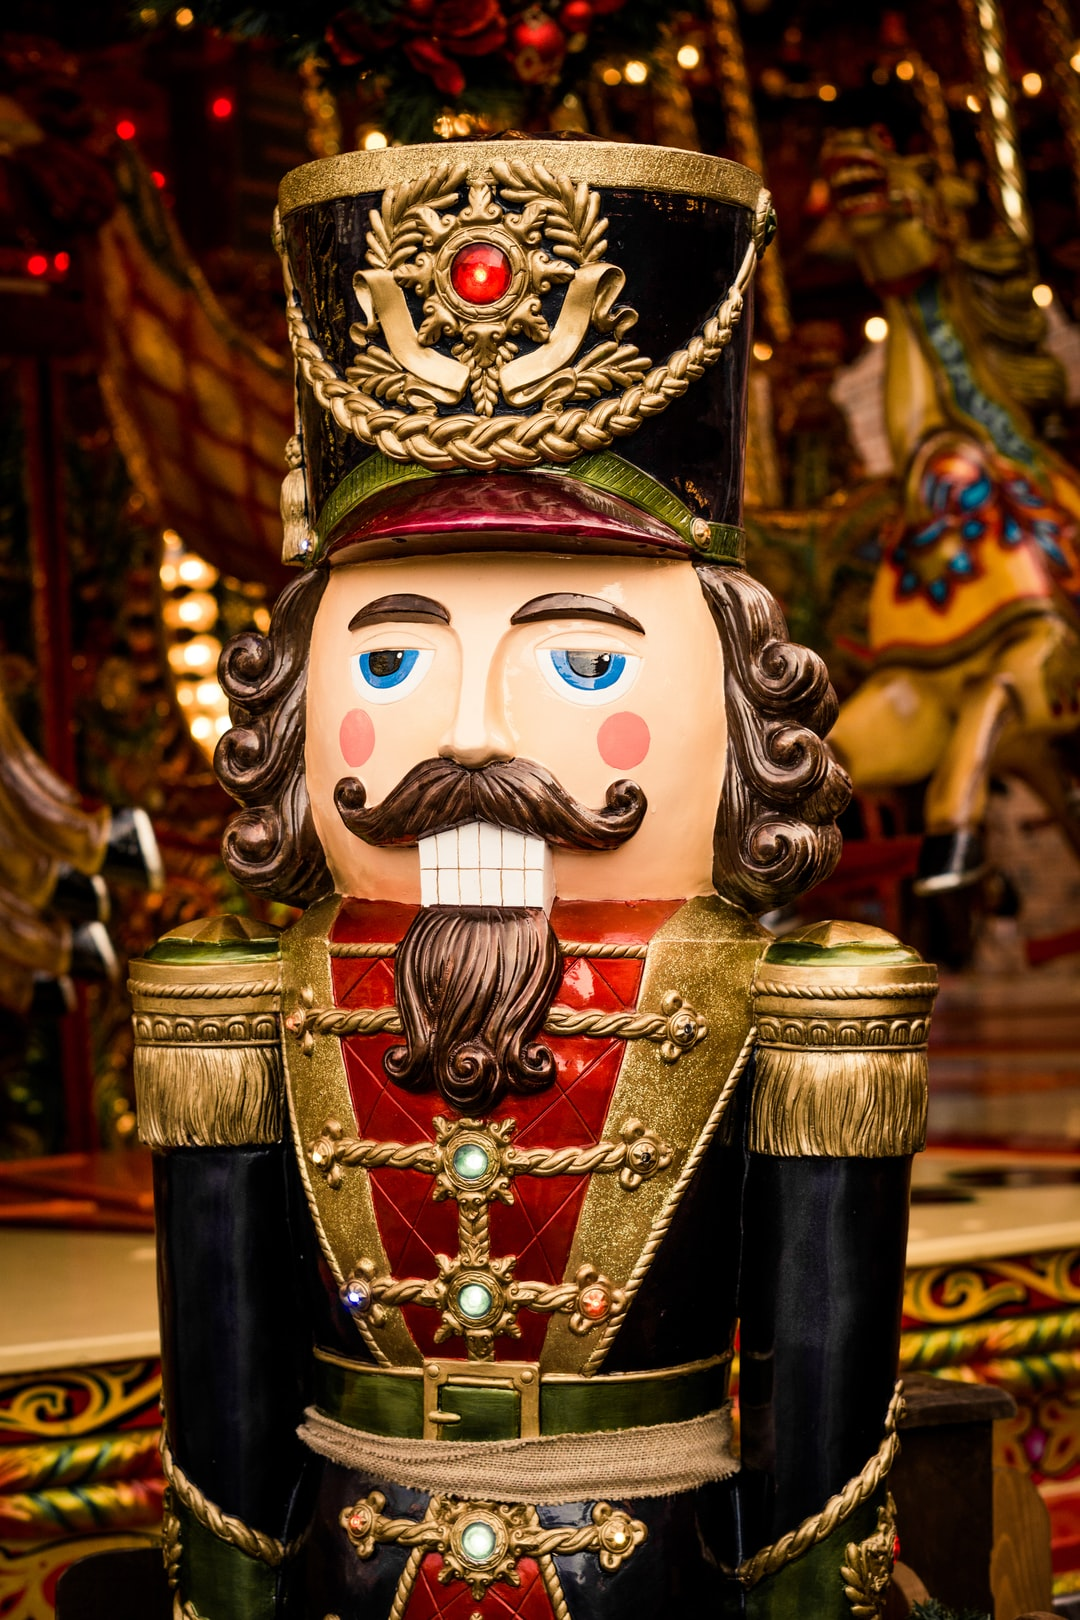 A picture of a toy soldier.